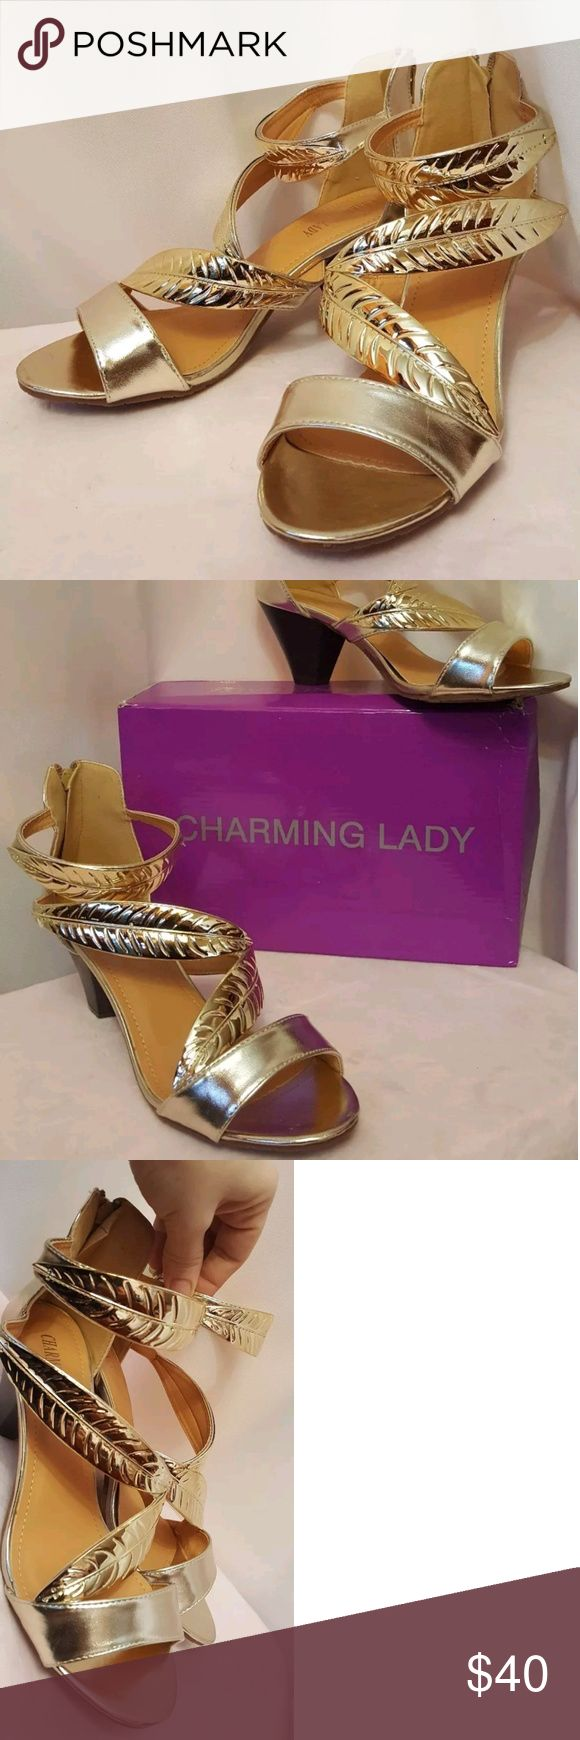 "Charming Lady Gold Etched leaf Strap Heels Size 9 Make a statement in these beautiful metallic leaf etched dress Slip-on sandals. Perfect for the holiday festivities!   Features a 3"" chunky heel, faux leather design, average width.   Deeply discounted price. Retails $99.  Charming Lady Shoes Heels"